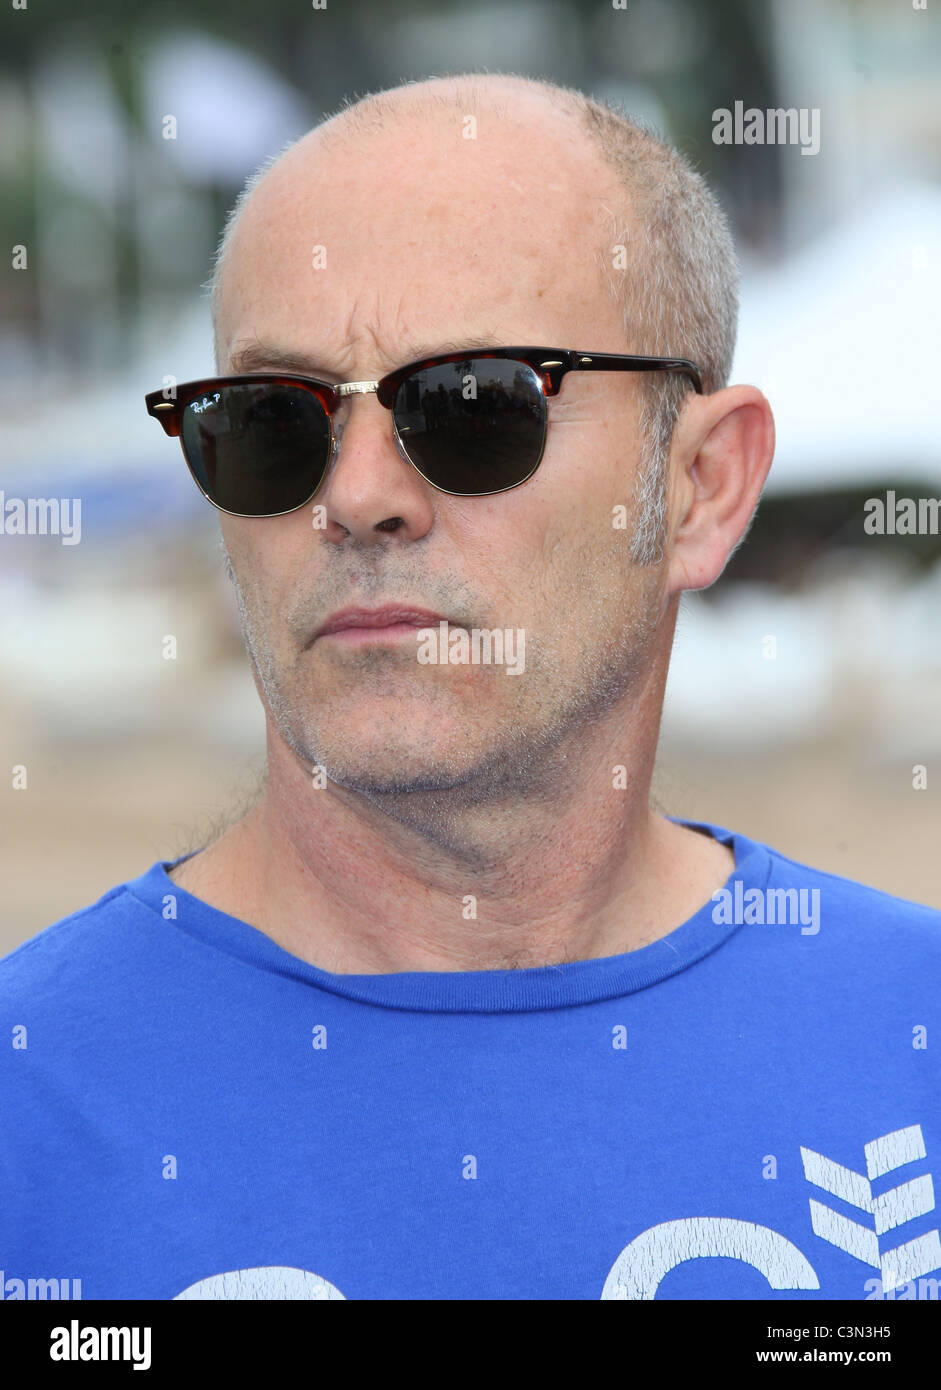 KEITH ALLEN UNLAWFUL KILLING PHOTOCALL CANNES FILM FESTIVAL 2011 CARLTON HOTEL PIER CANNES FRANCE 13 May 2011 - Stock Image